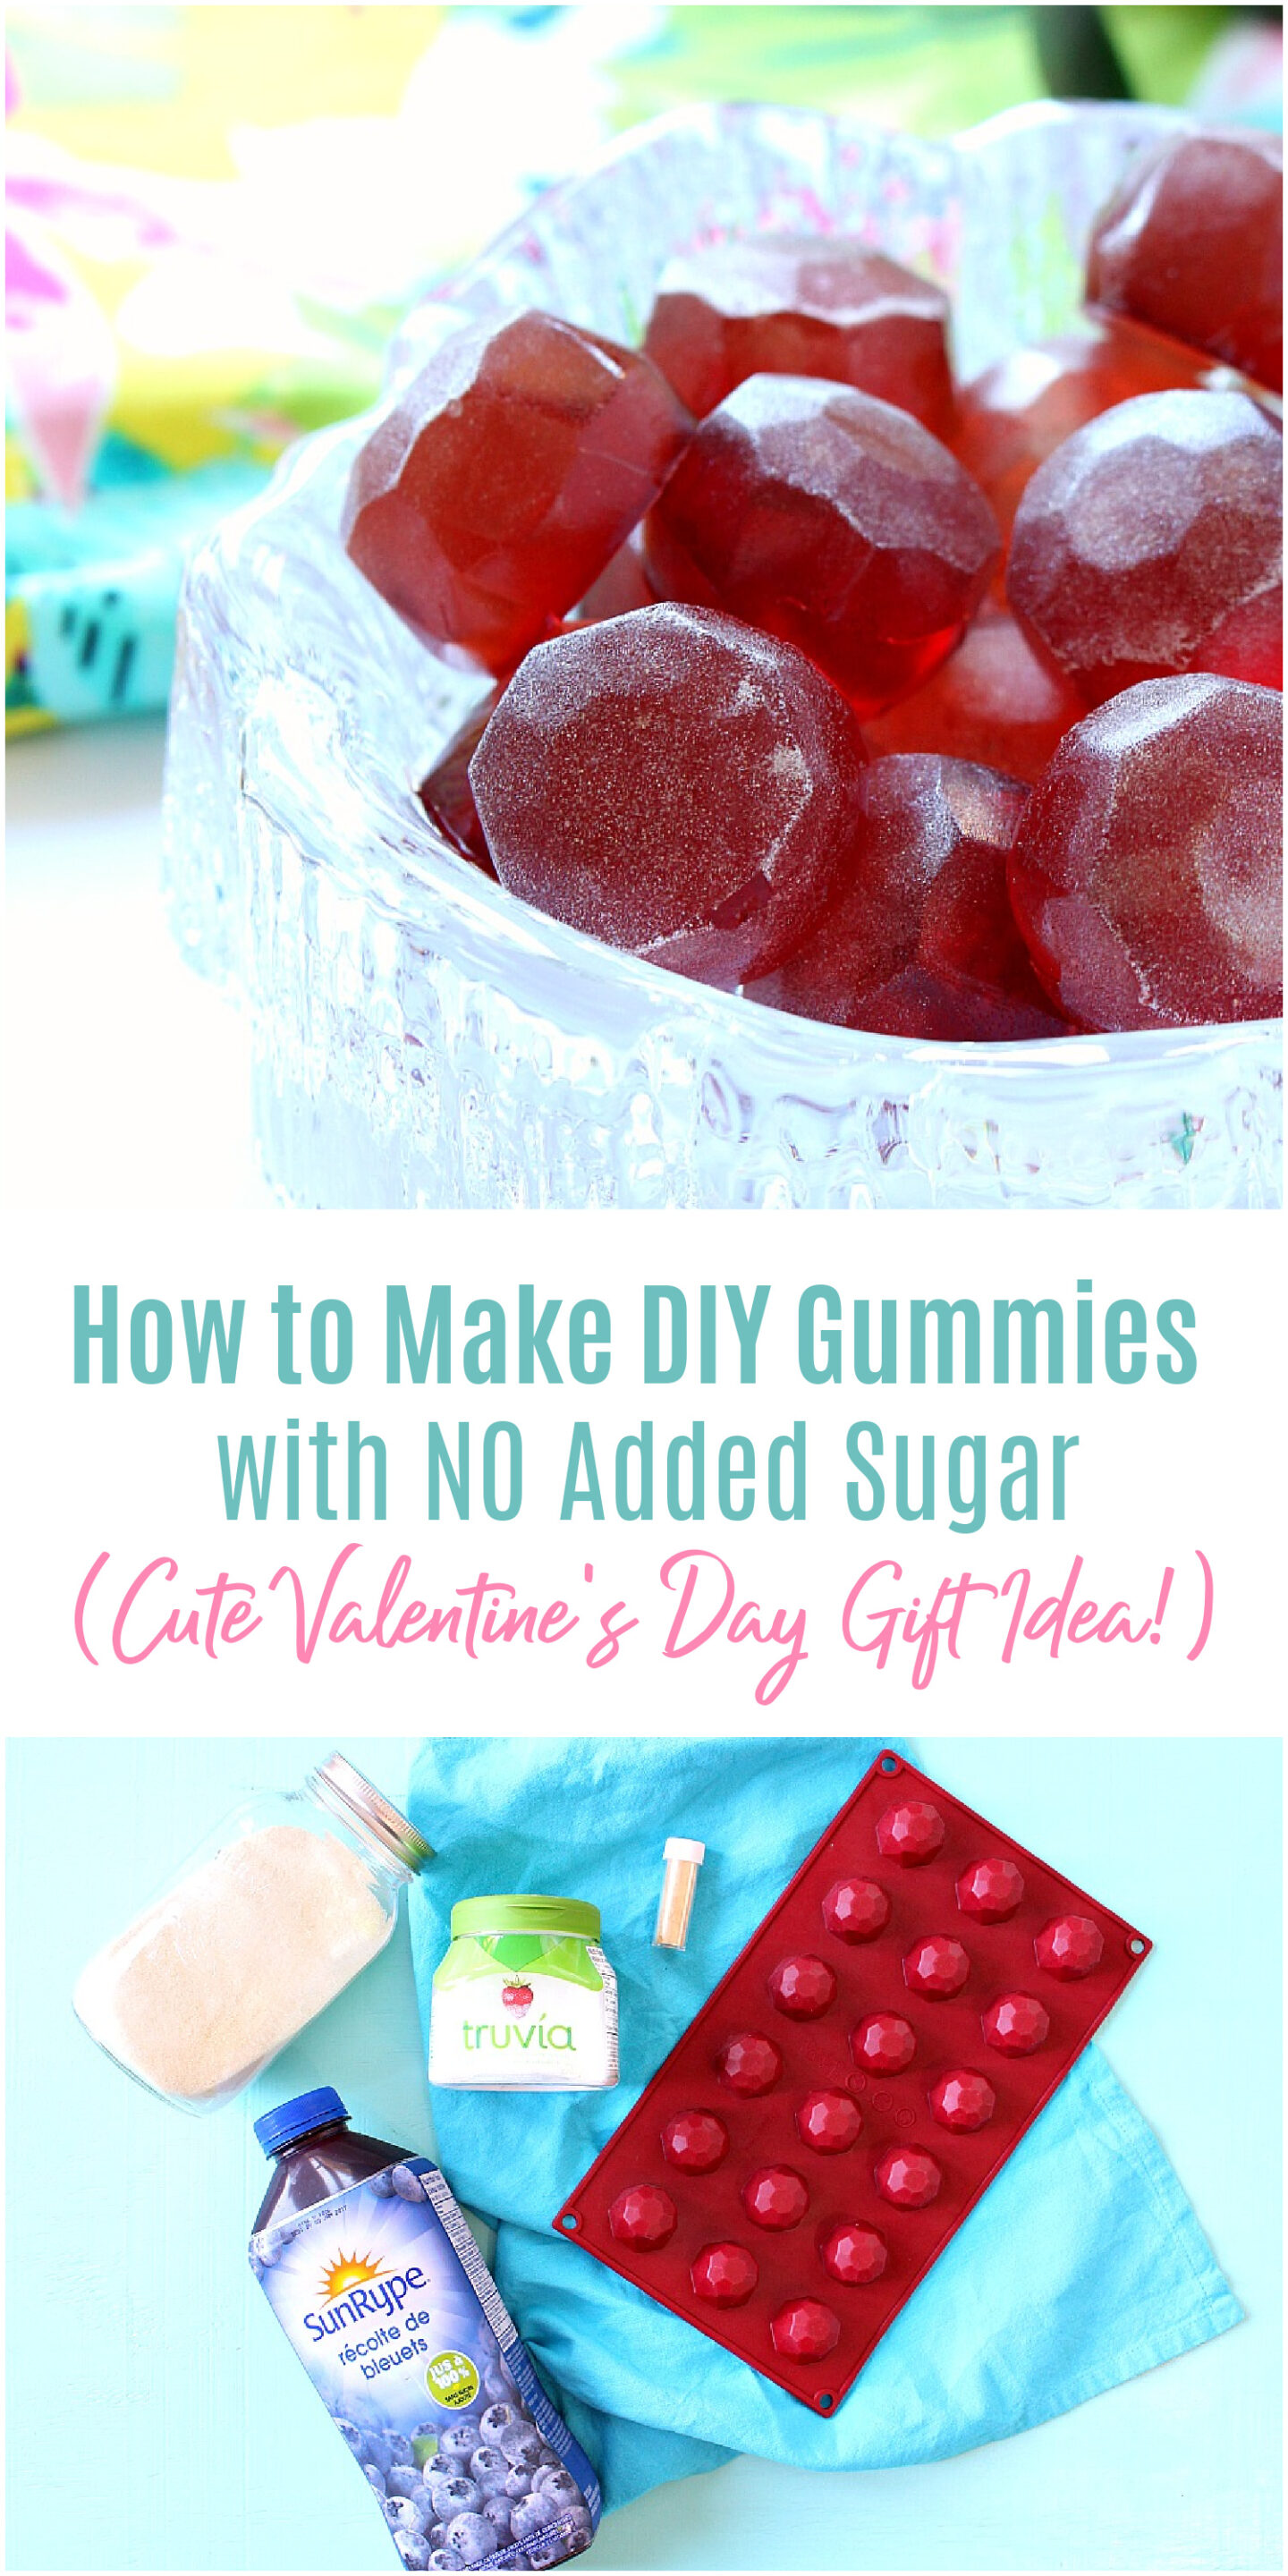 How to Make DIY Gummies with NO Added Sugar